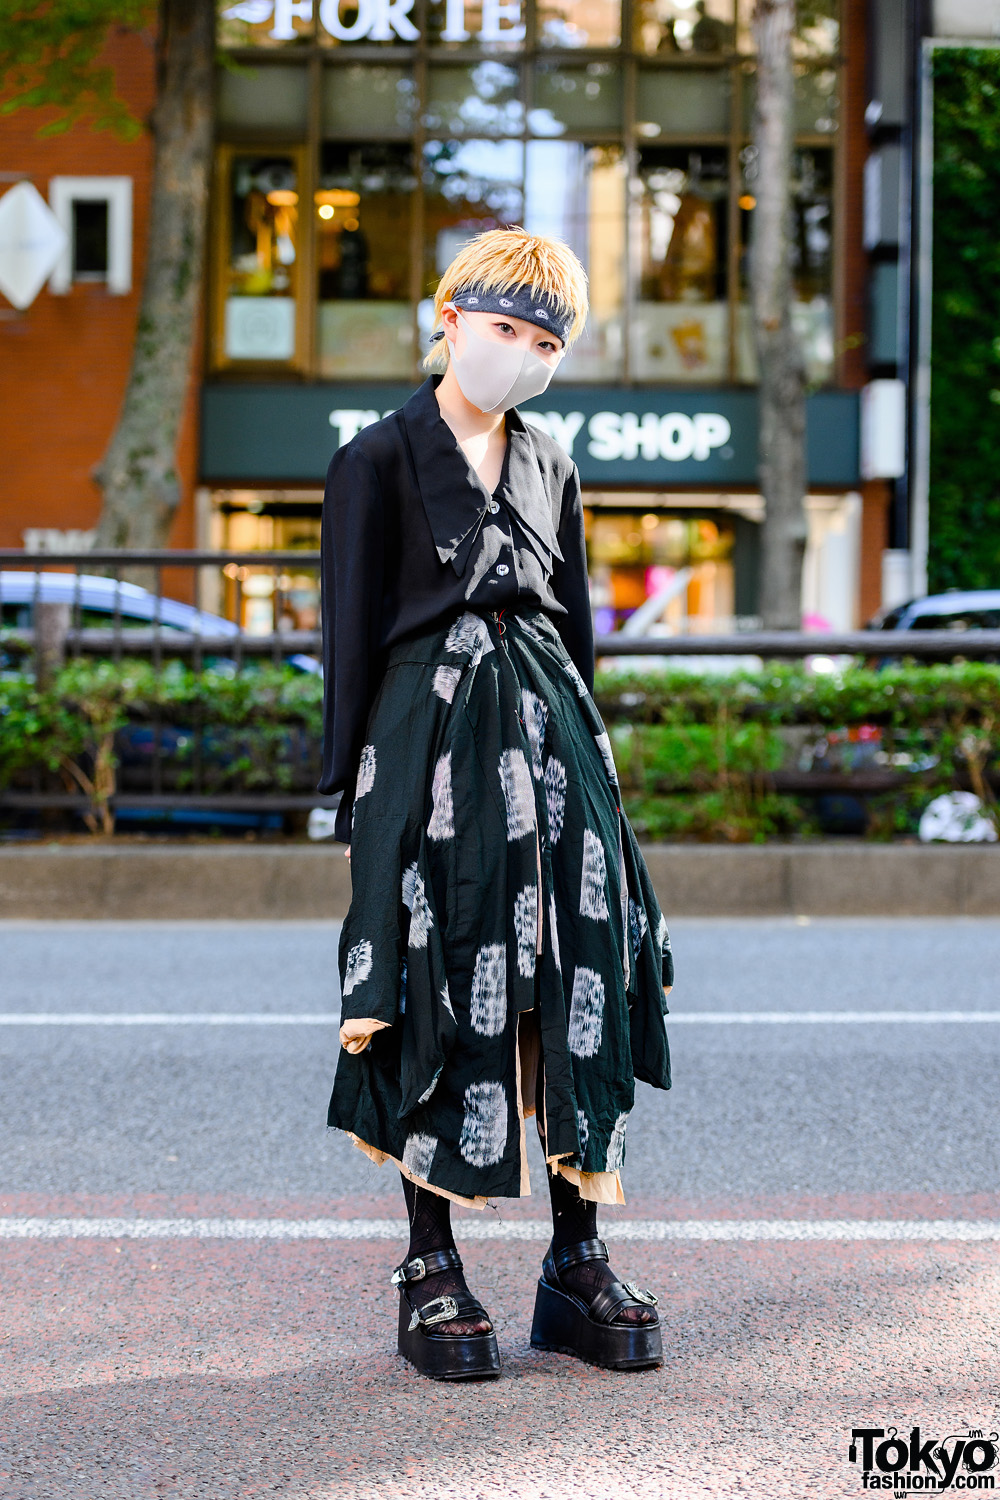 Japanese Fashion Student in Tokyo w/ Headband, Double Lapel Blouse, Handmade Asymmetric Skirt, Ripped Tights & Platform Buckle Sandals